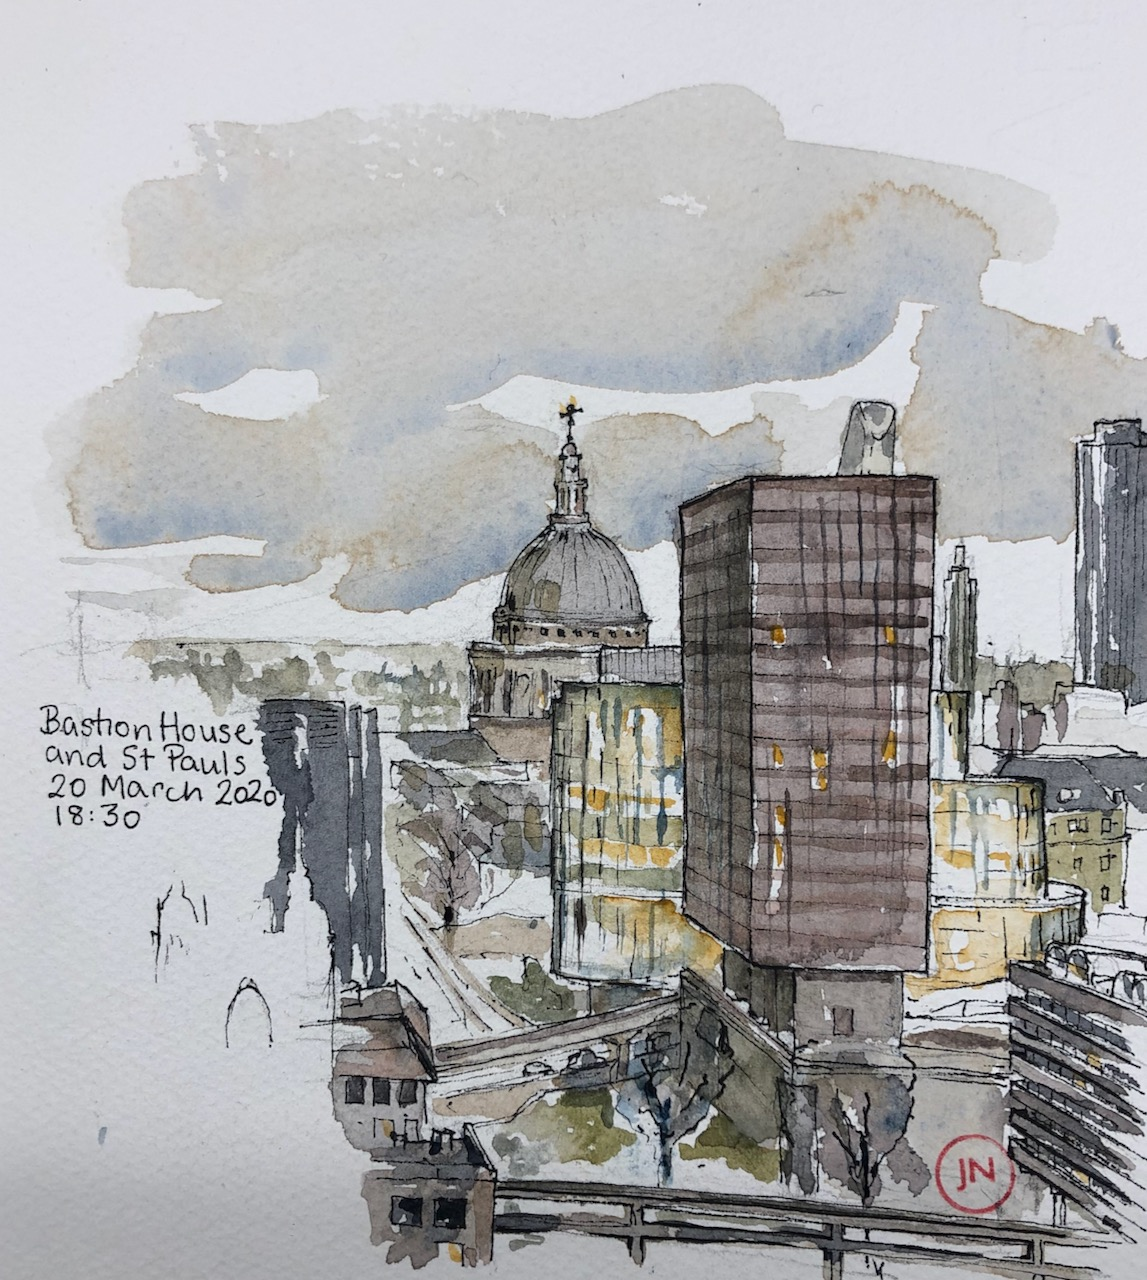 St Pauls and Bastion House